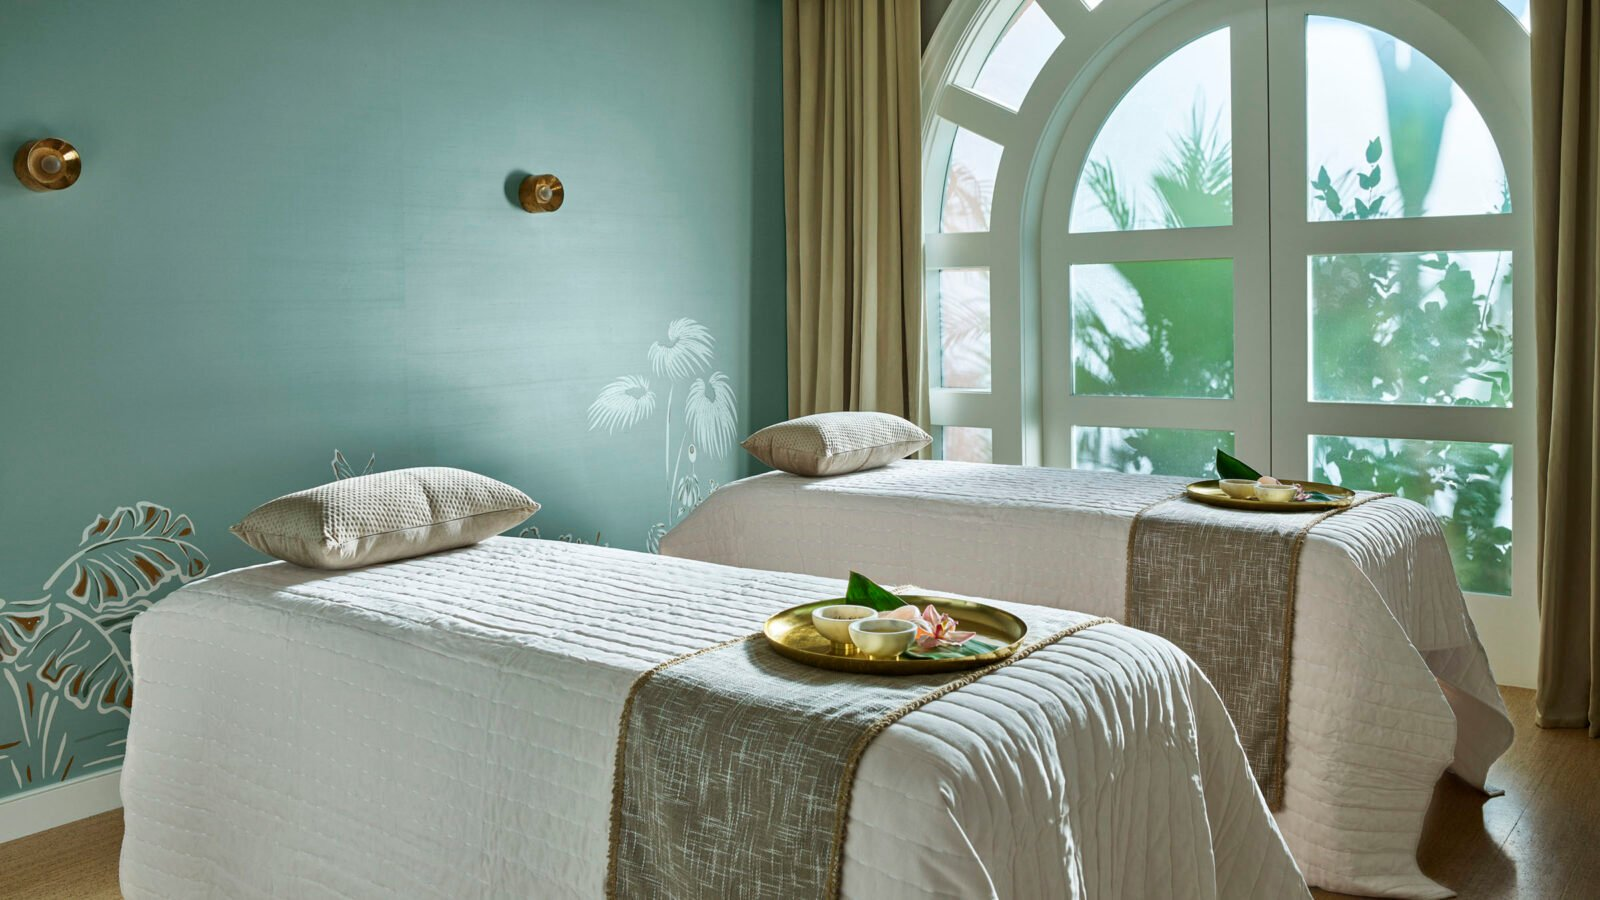 Duet Suite with custom blue walls, natural light and two plush beds